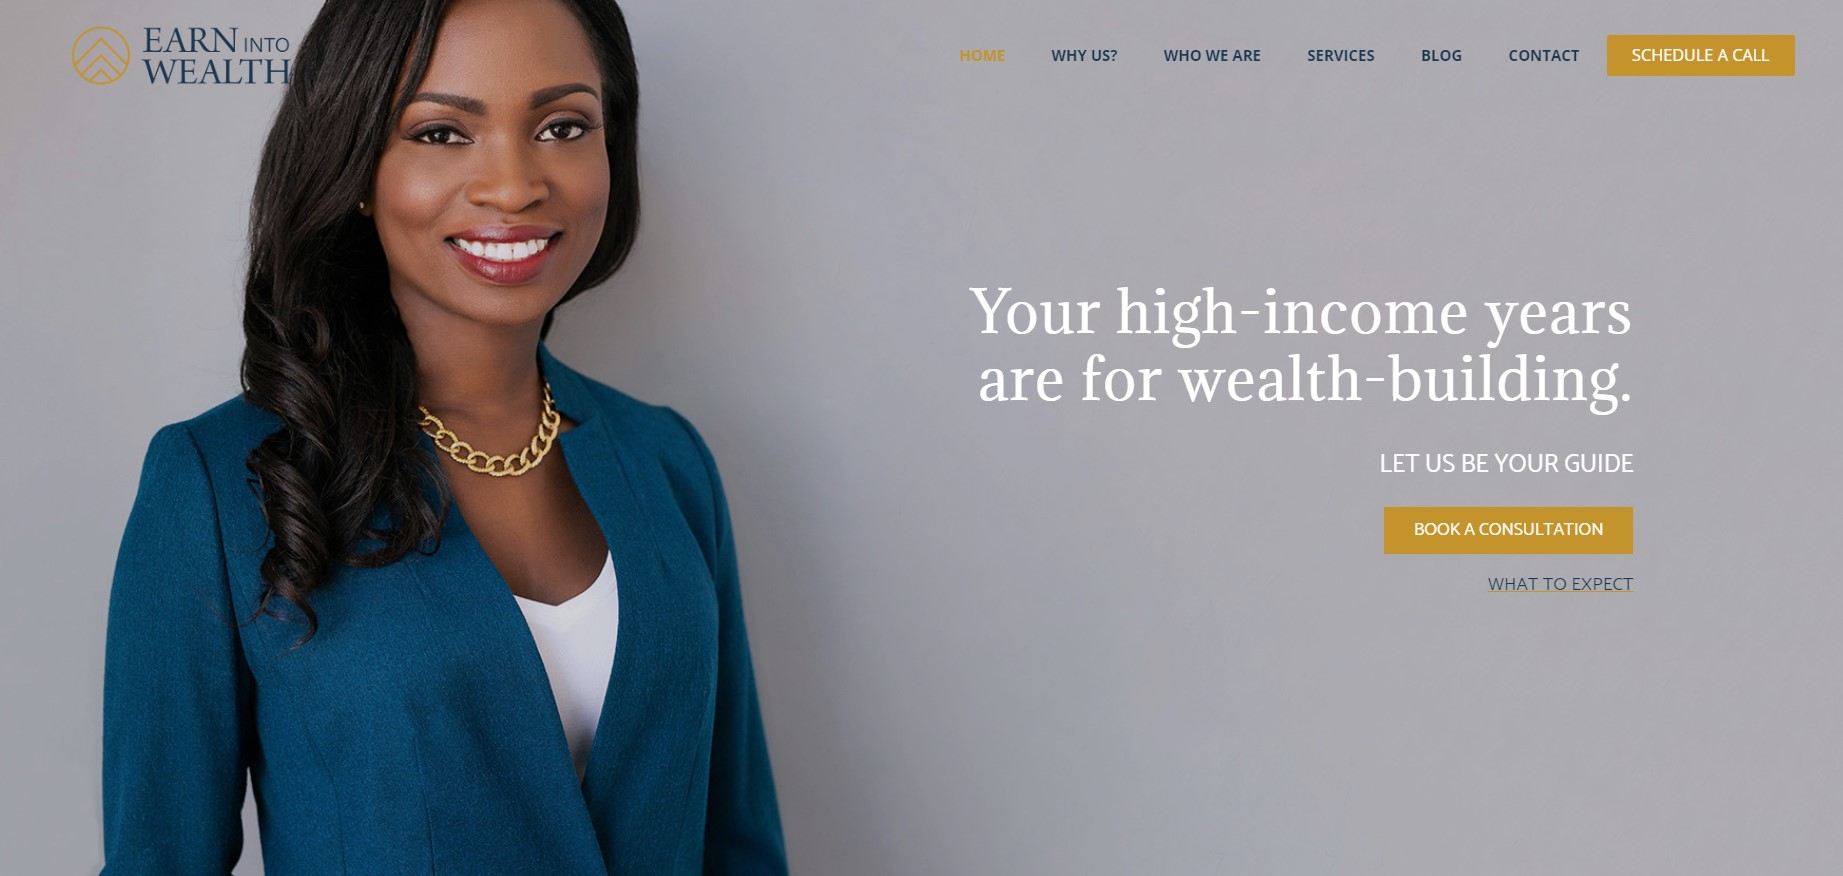 earn into wealth financial service in new york